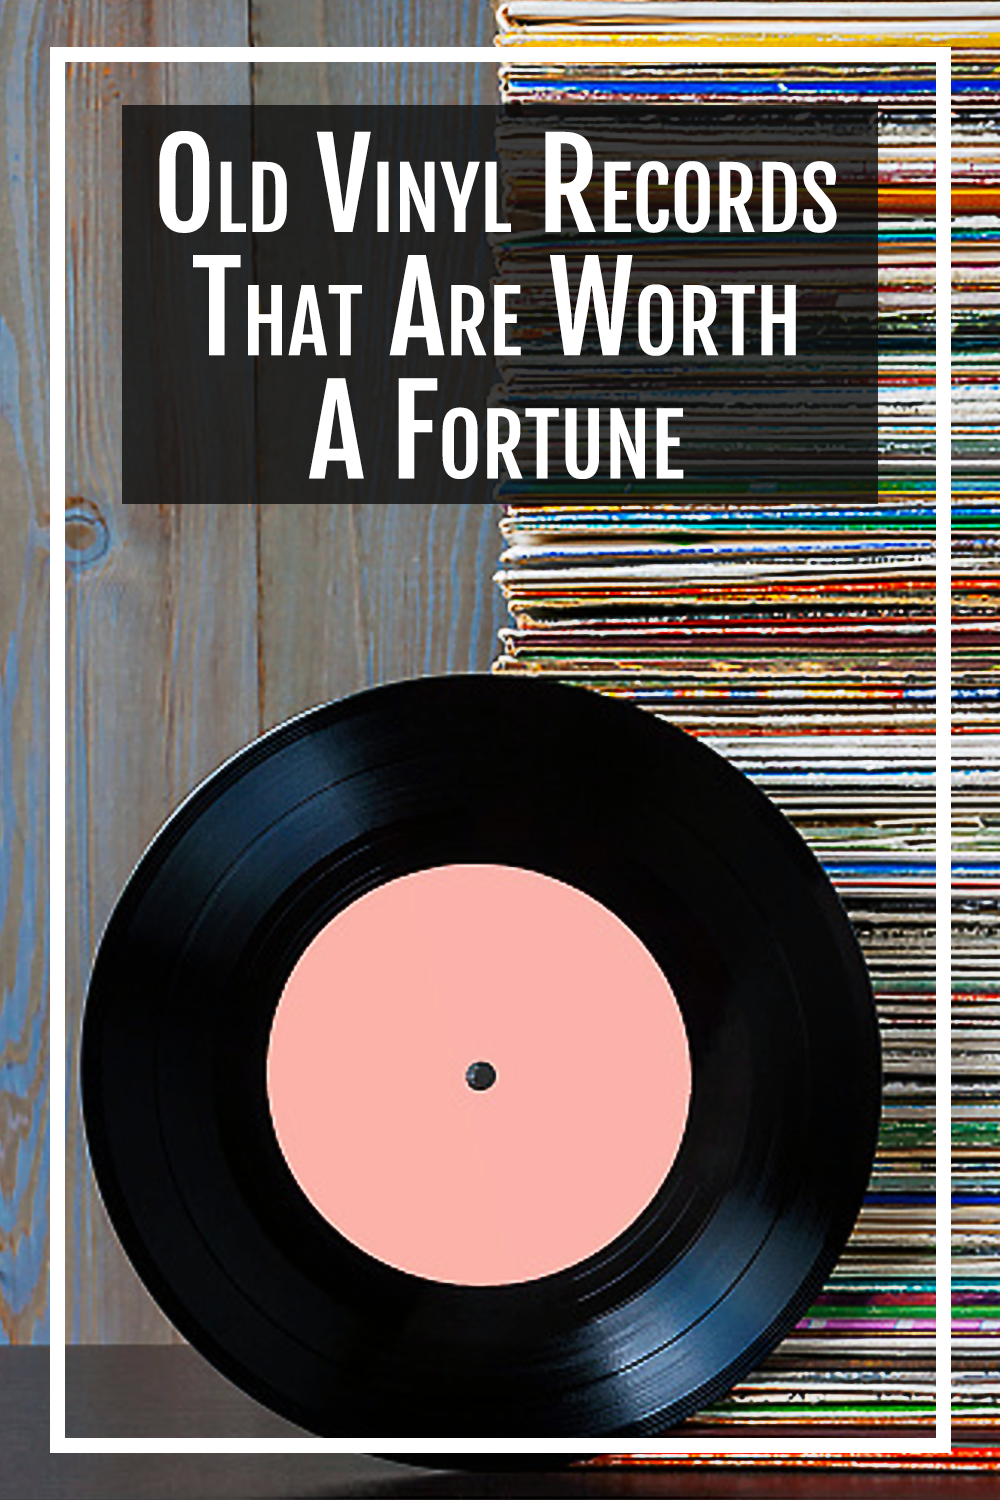 Old Vinyl Records That Are Worth A Fortune In 2020 Old Vinyl Records Vinyl Records Records